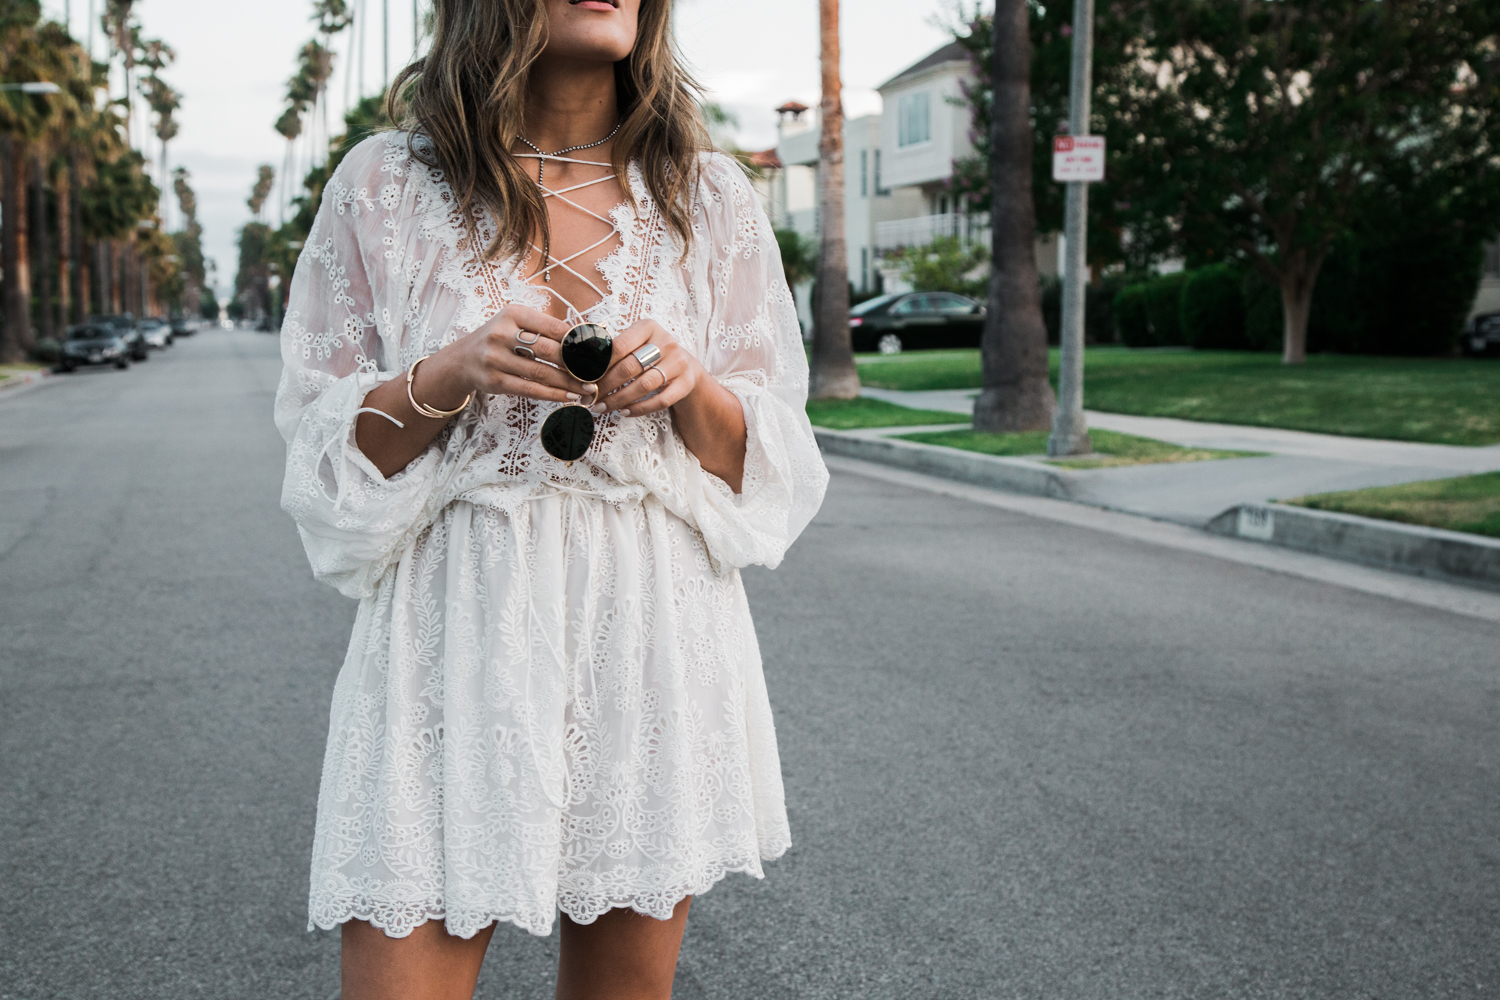 Sara Azani of Style MBA wears a white Zimmermann lace-up dress and ray-ban sunglasses